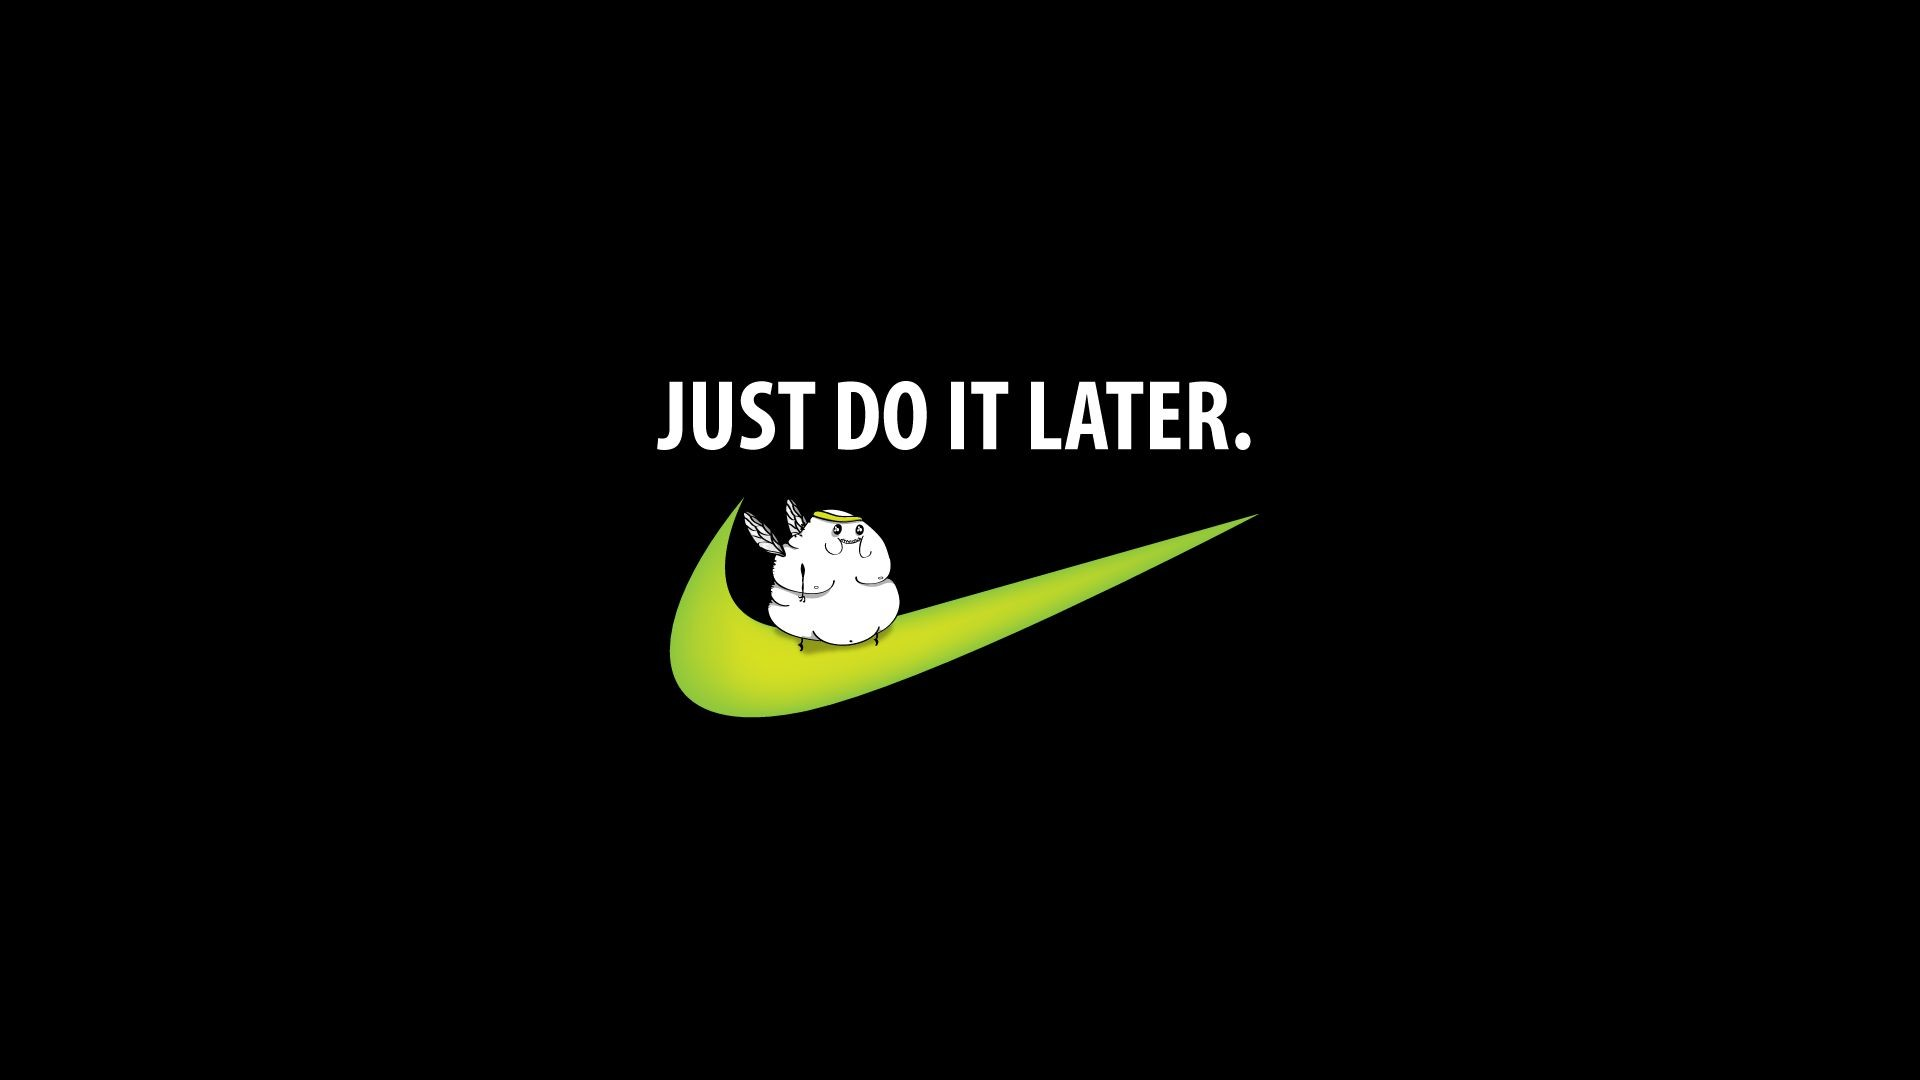 Funny Nike Wallpapers